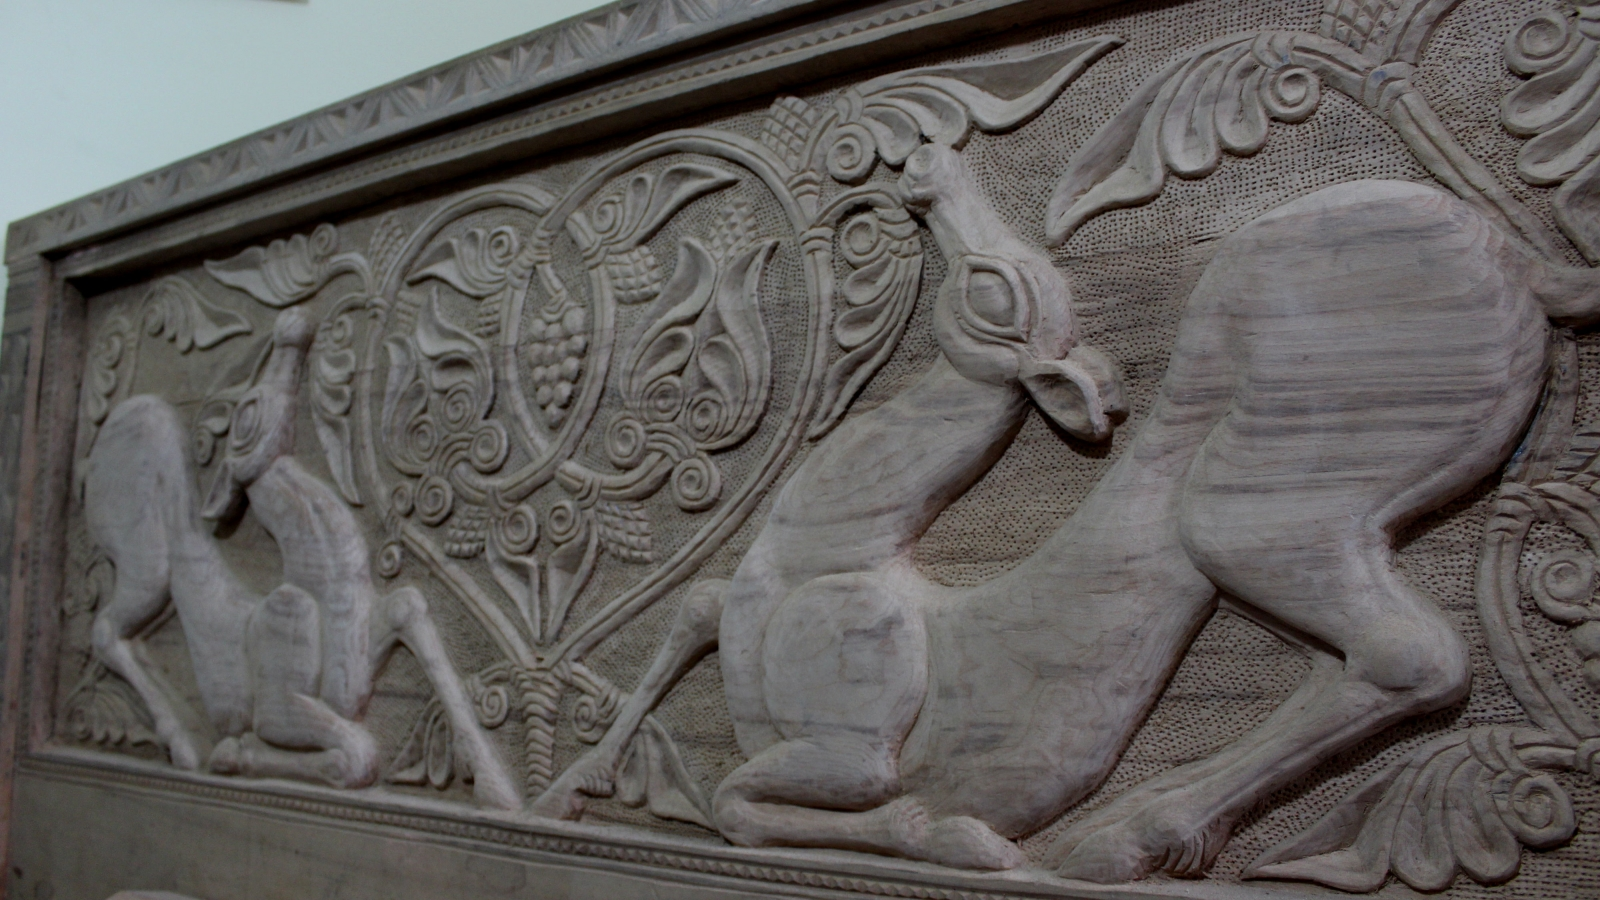 Capreolus depicted on the wooden headboard. Snoveli Art Studio, Village Sno, Kazbegi municipality